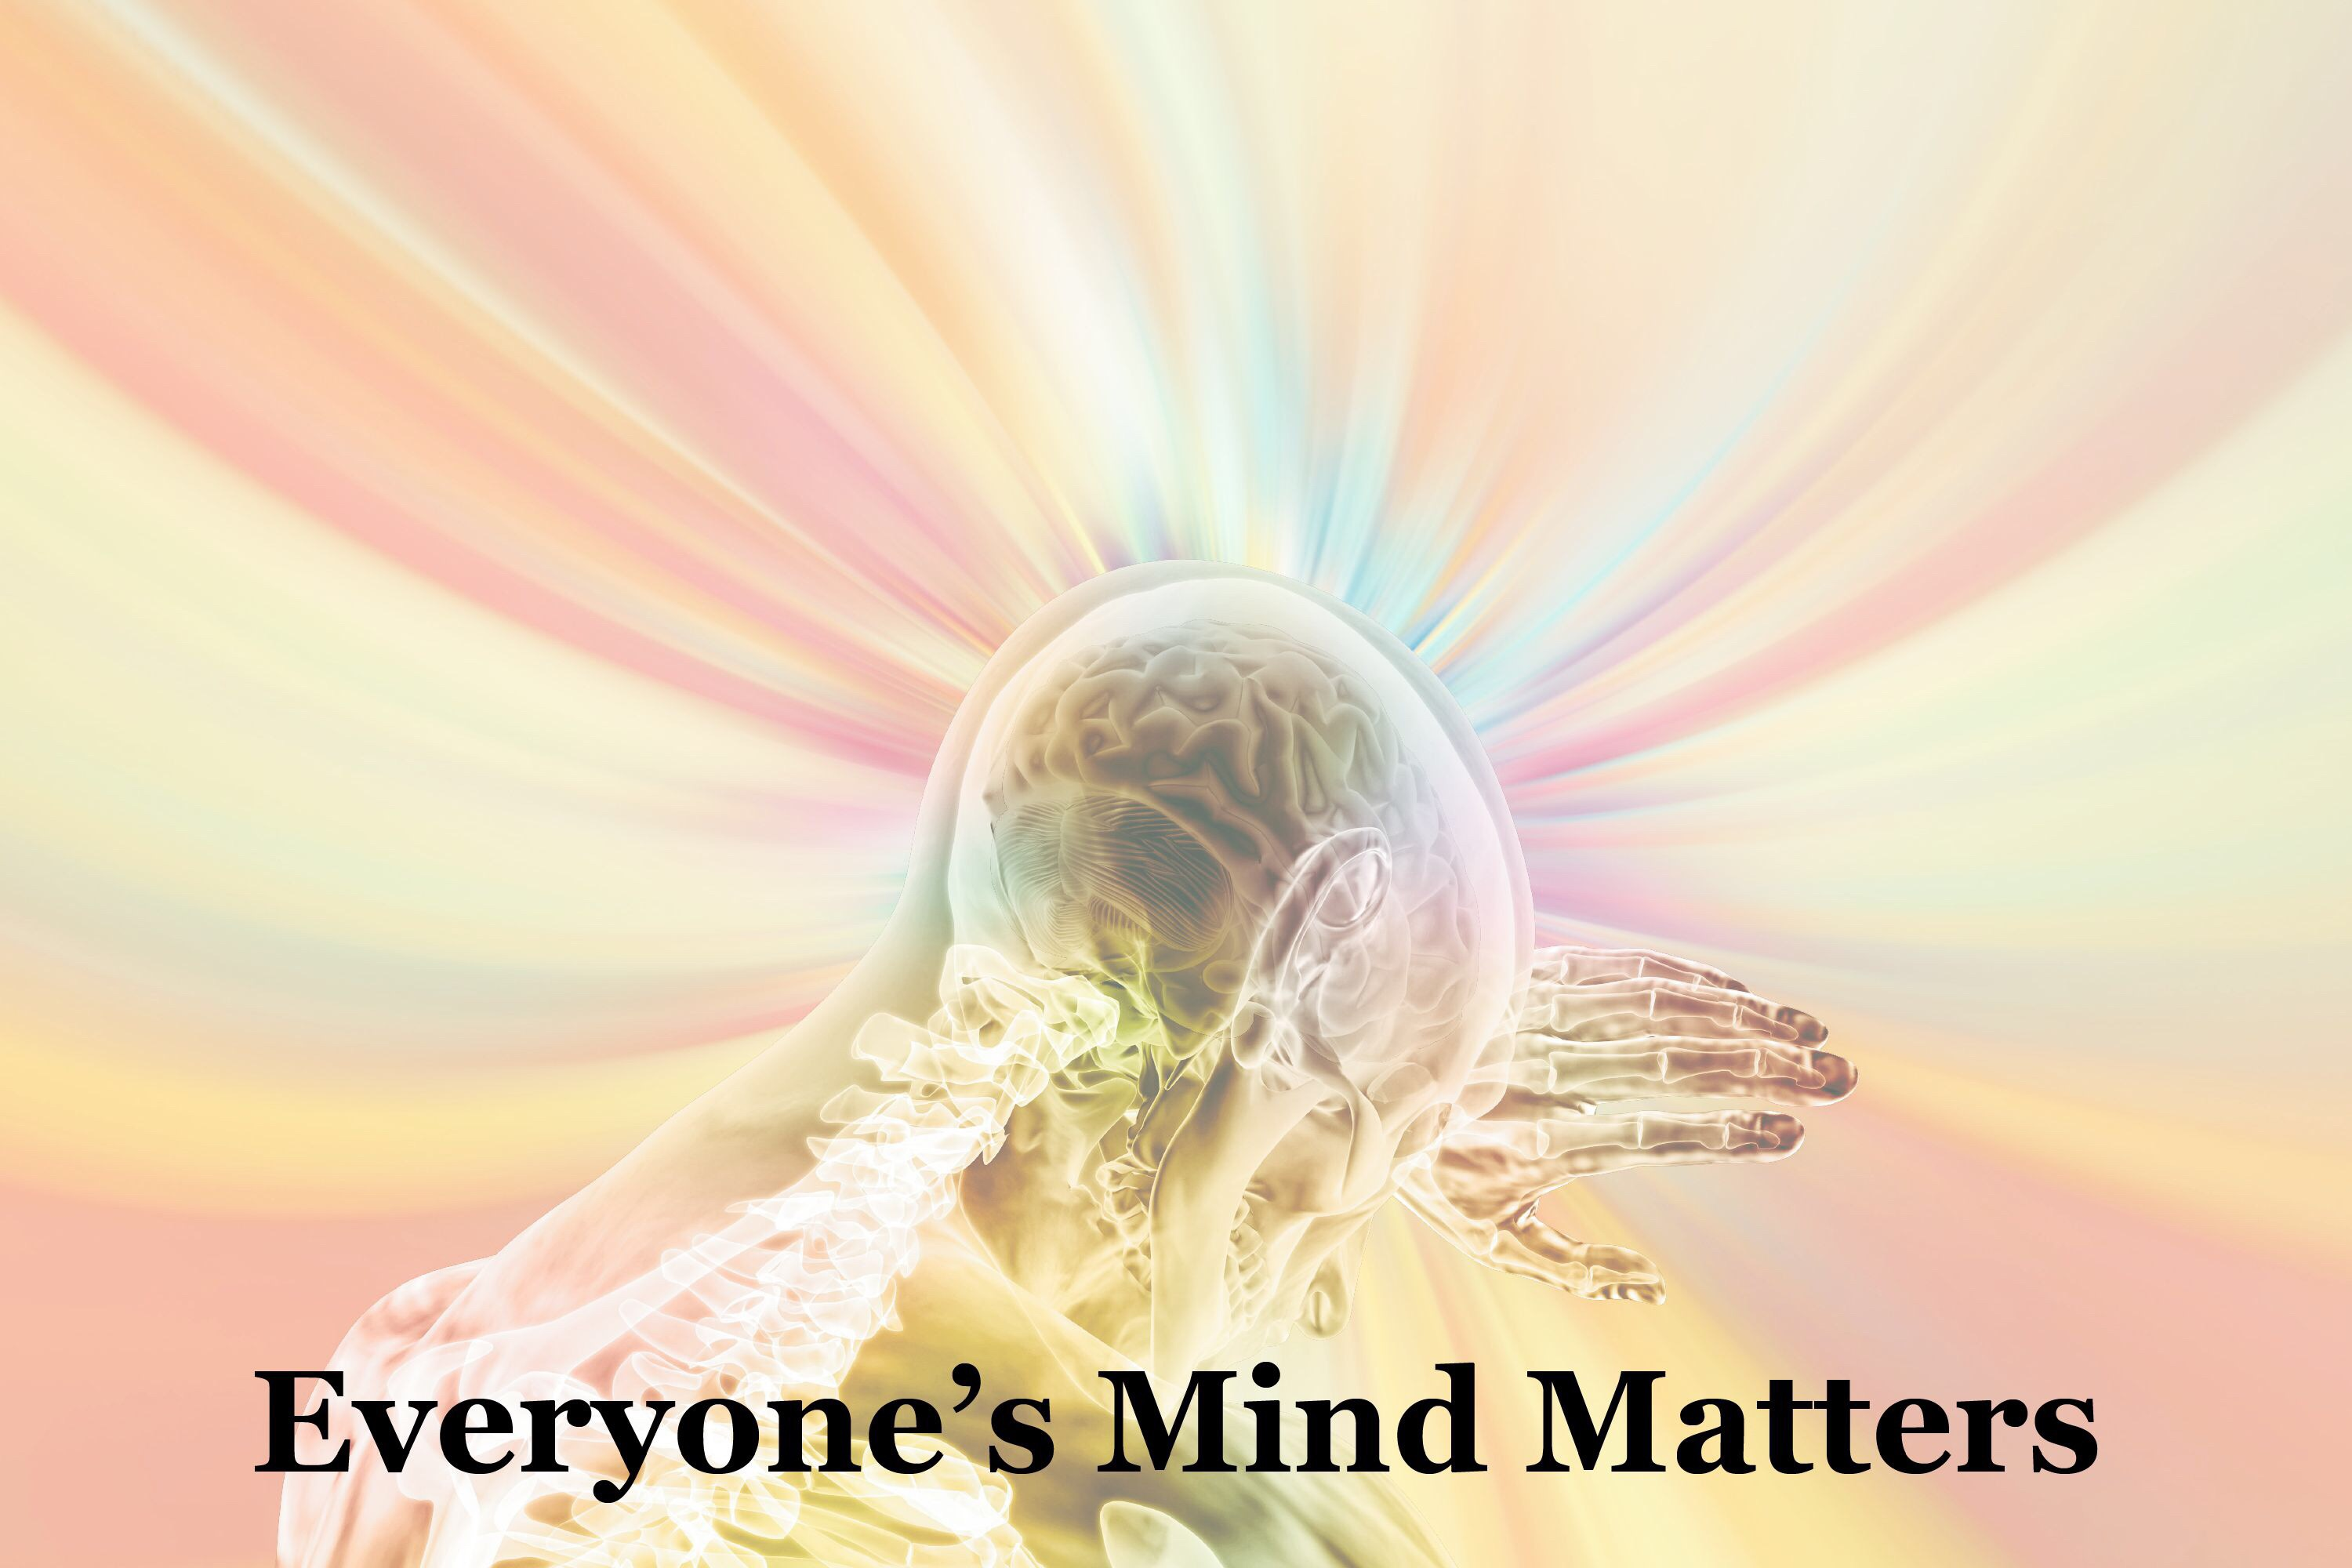 personal development through mindfulness, mindset reset, mind matters, optimistic vs pessimistic, Optimism, developing minds, mindfulness meditation, mindful exercise, change your mindset, best self help advice, changing thought patterns, mindfulness of body,